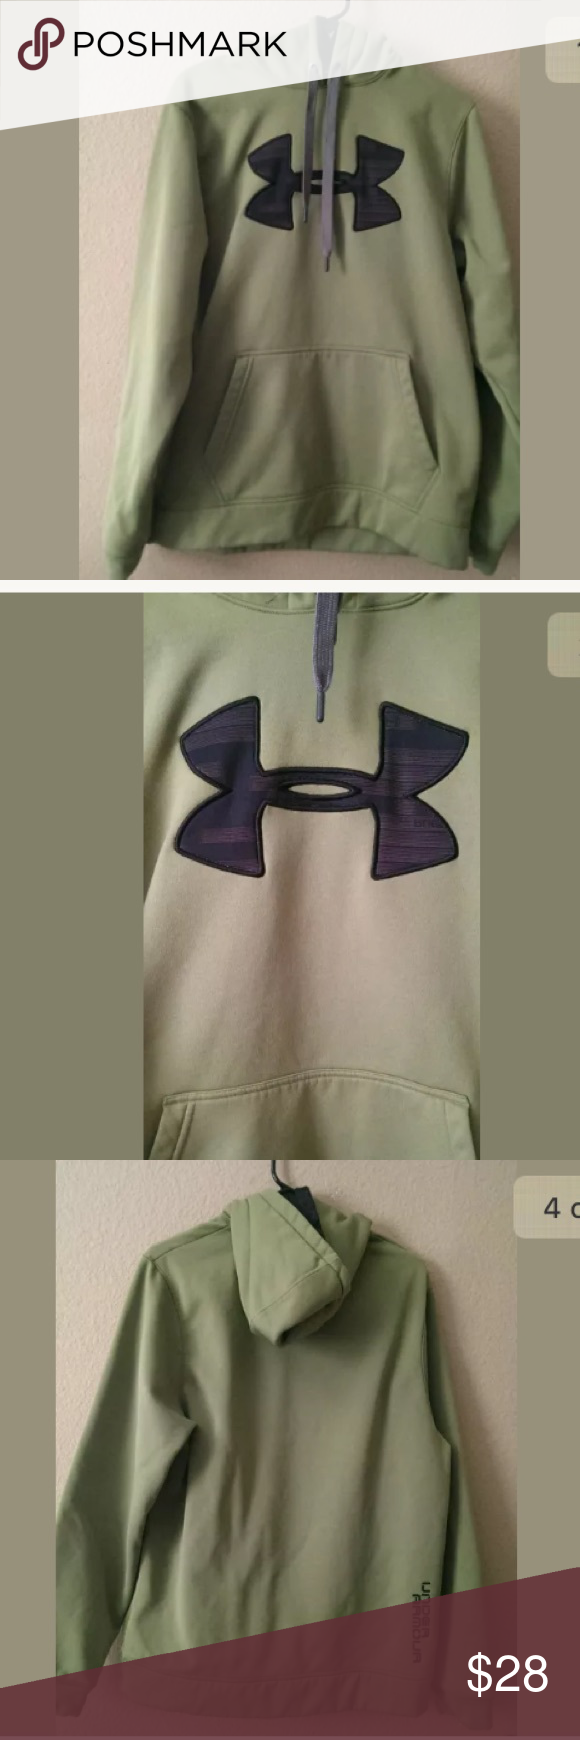 Mens Medium Under Armour Hoodie Excellent condition! Green with black logo. Under Armour Storm Hoodie Under Armour Jackets & Coats Lightweight & Shirt Jackets